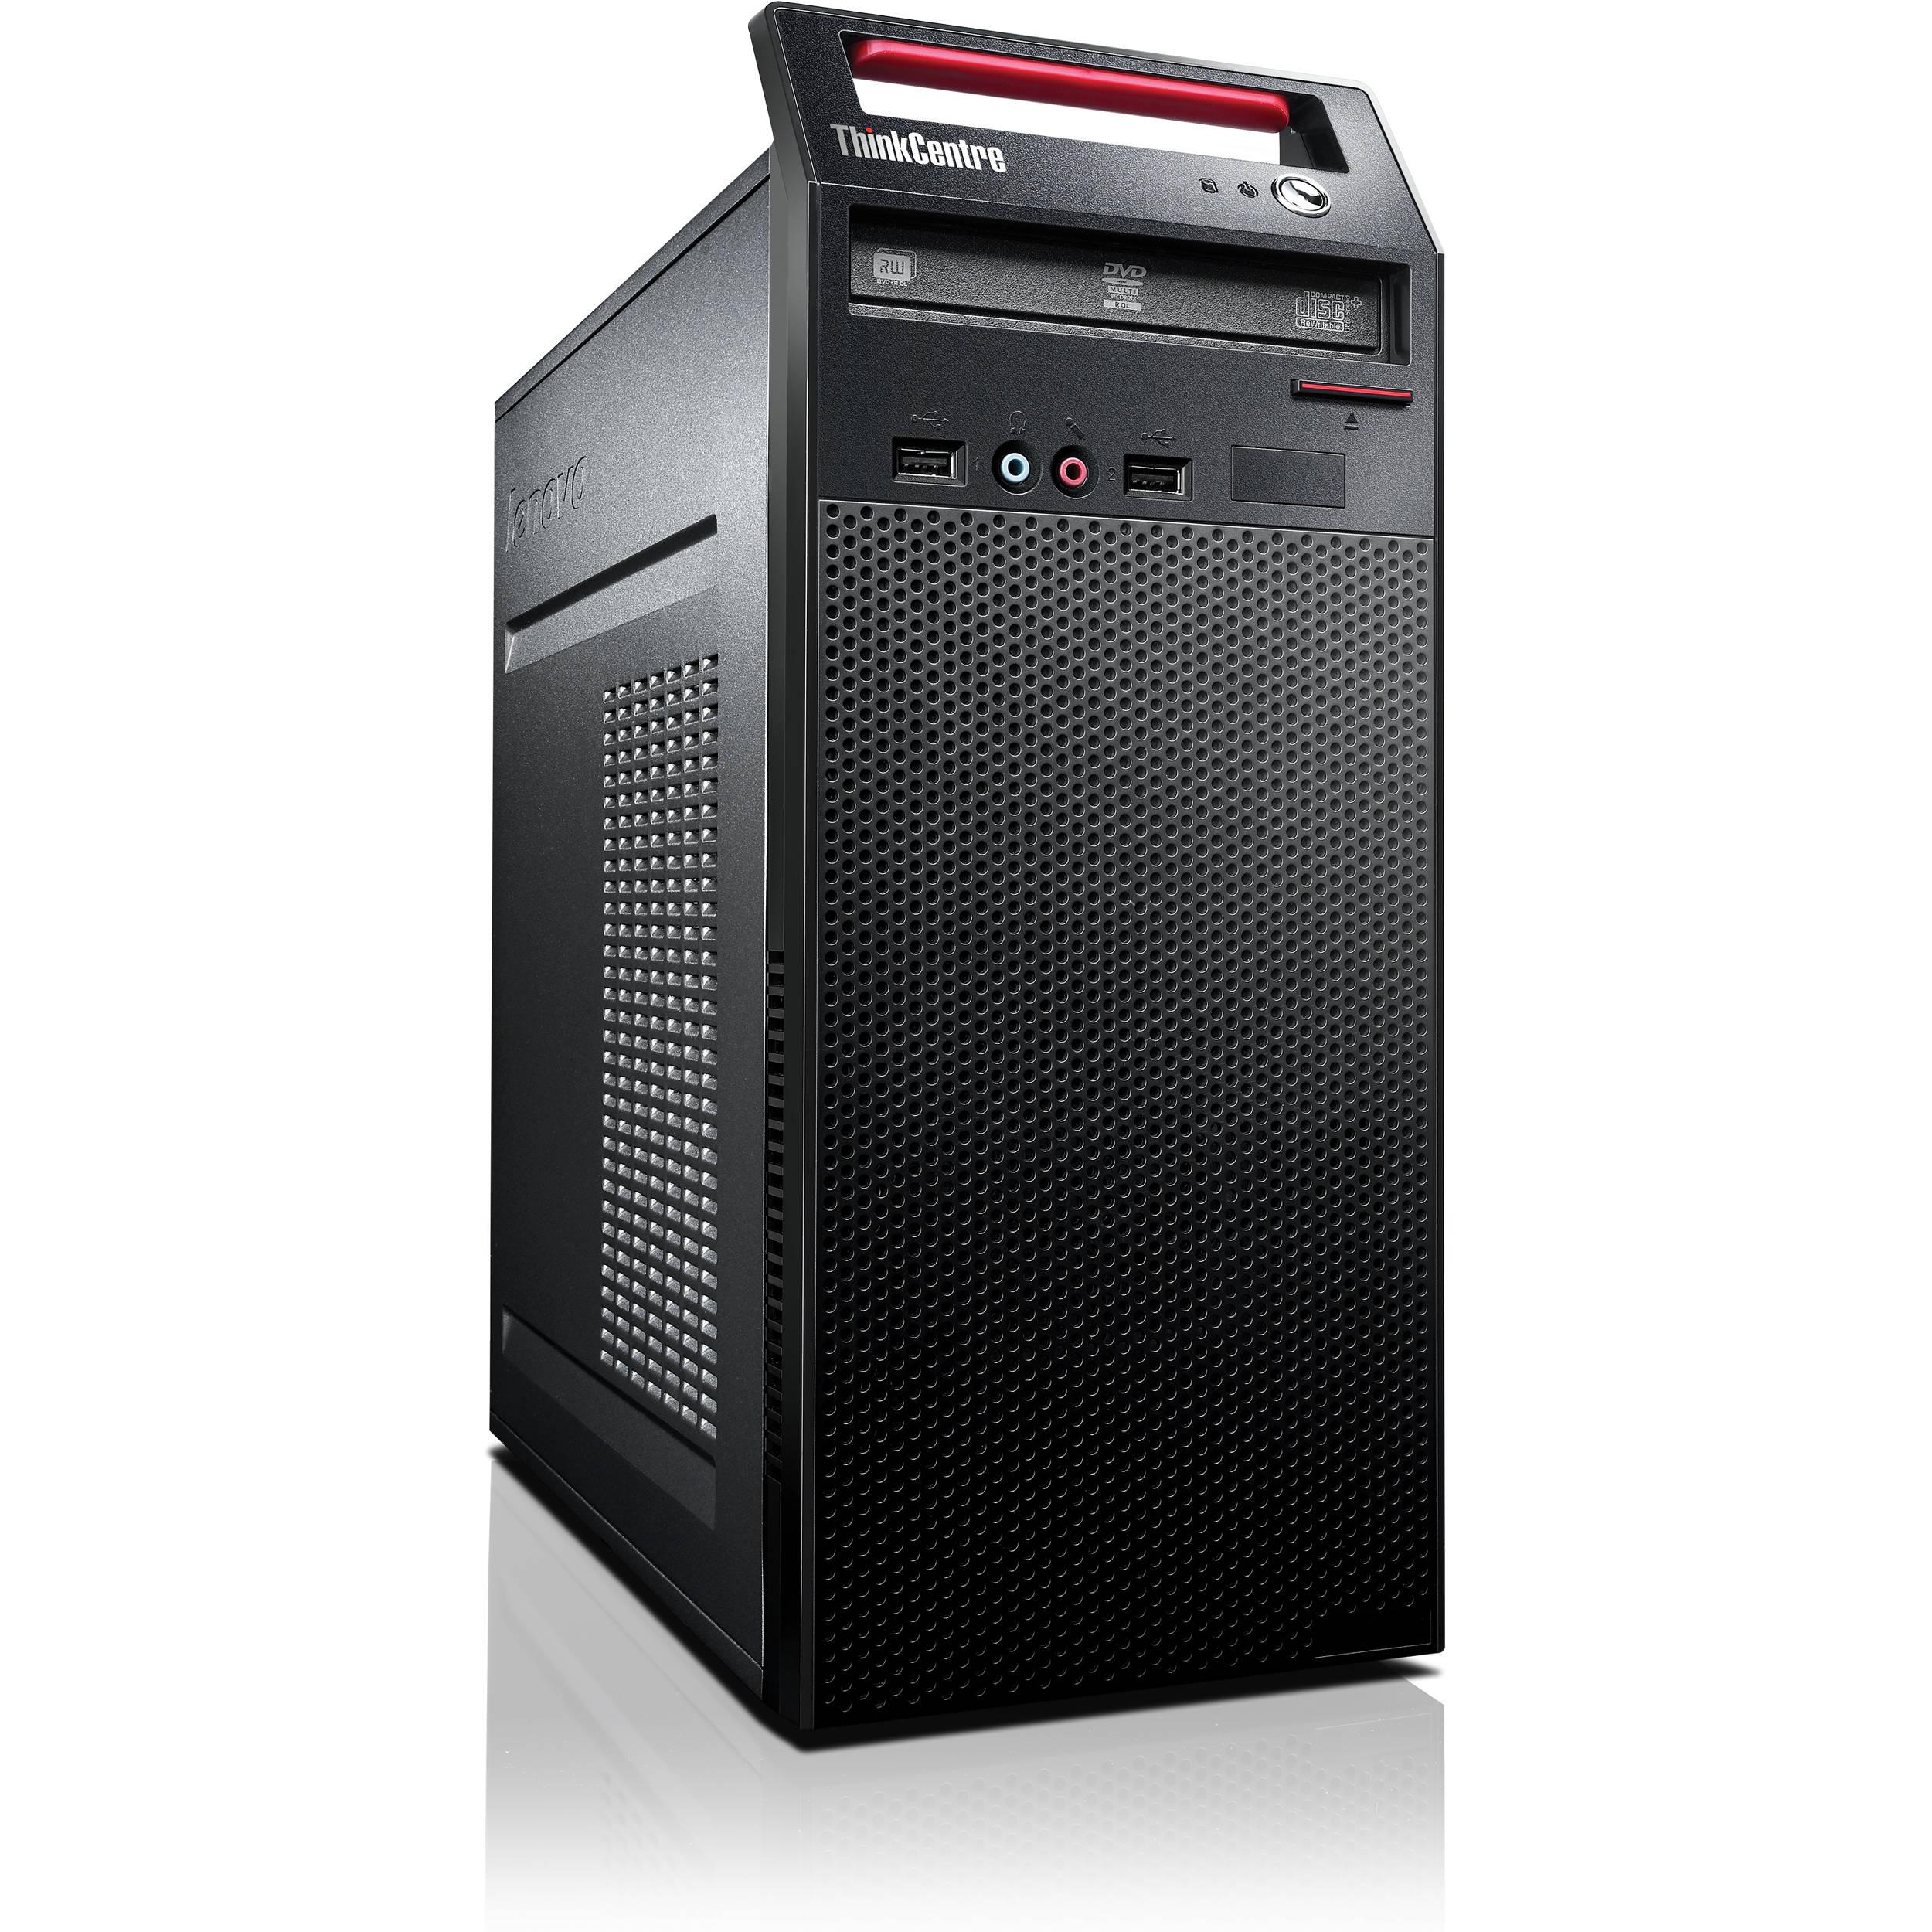 Lenovo A70 Thinkcentre SFF